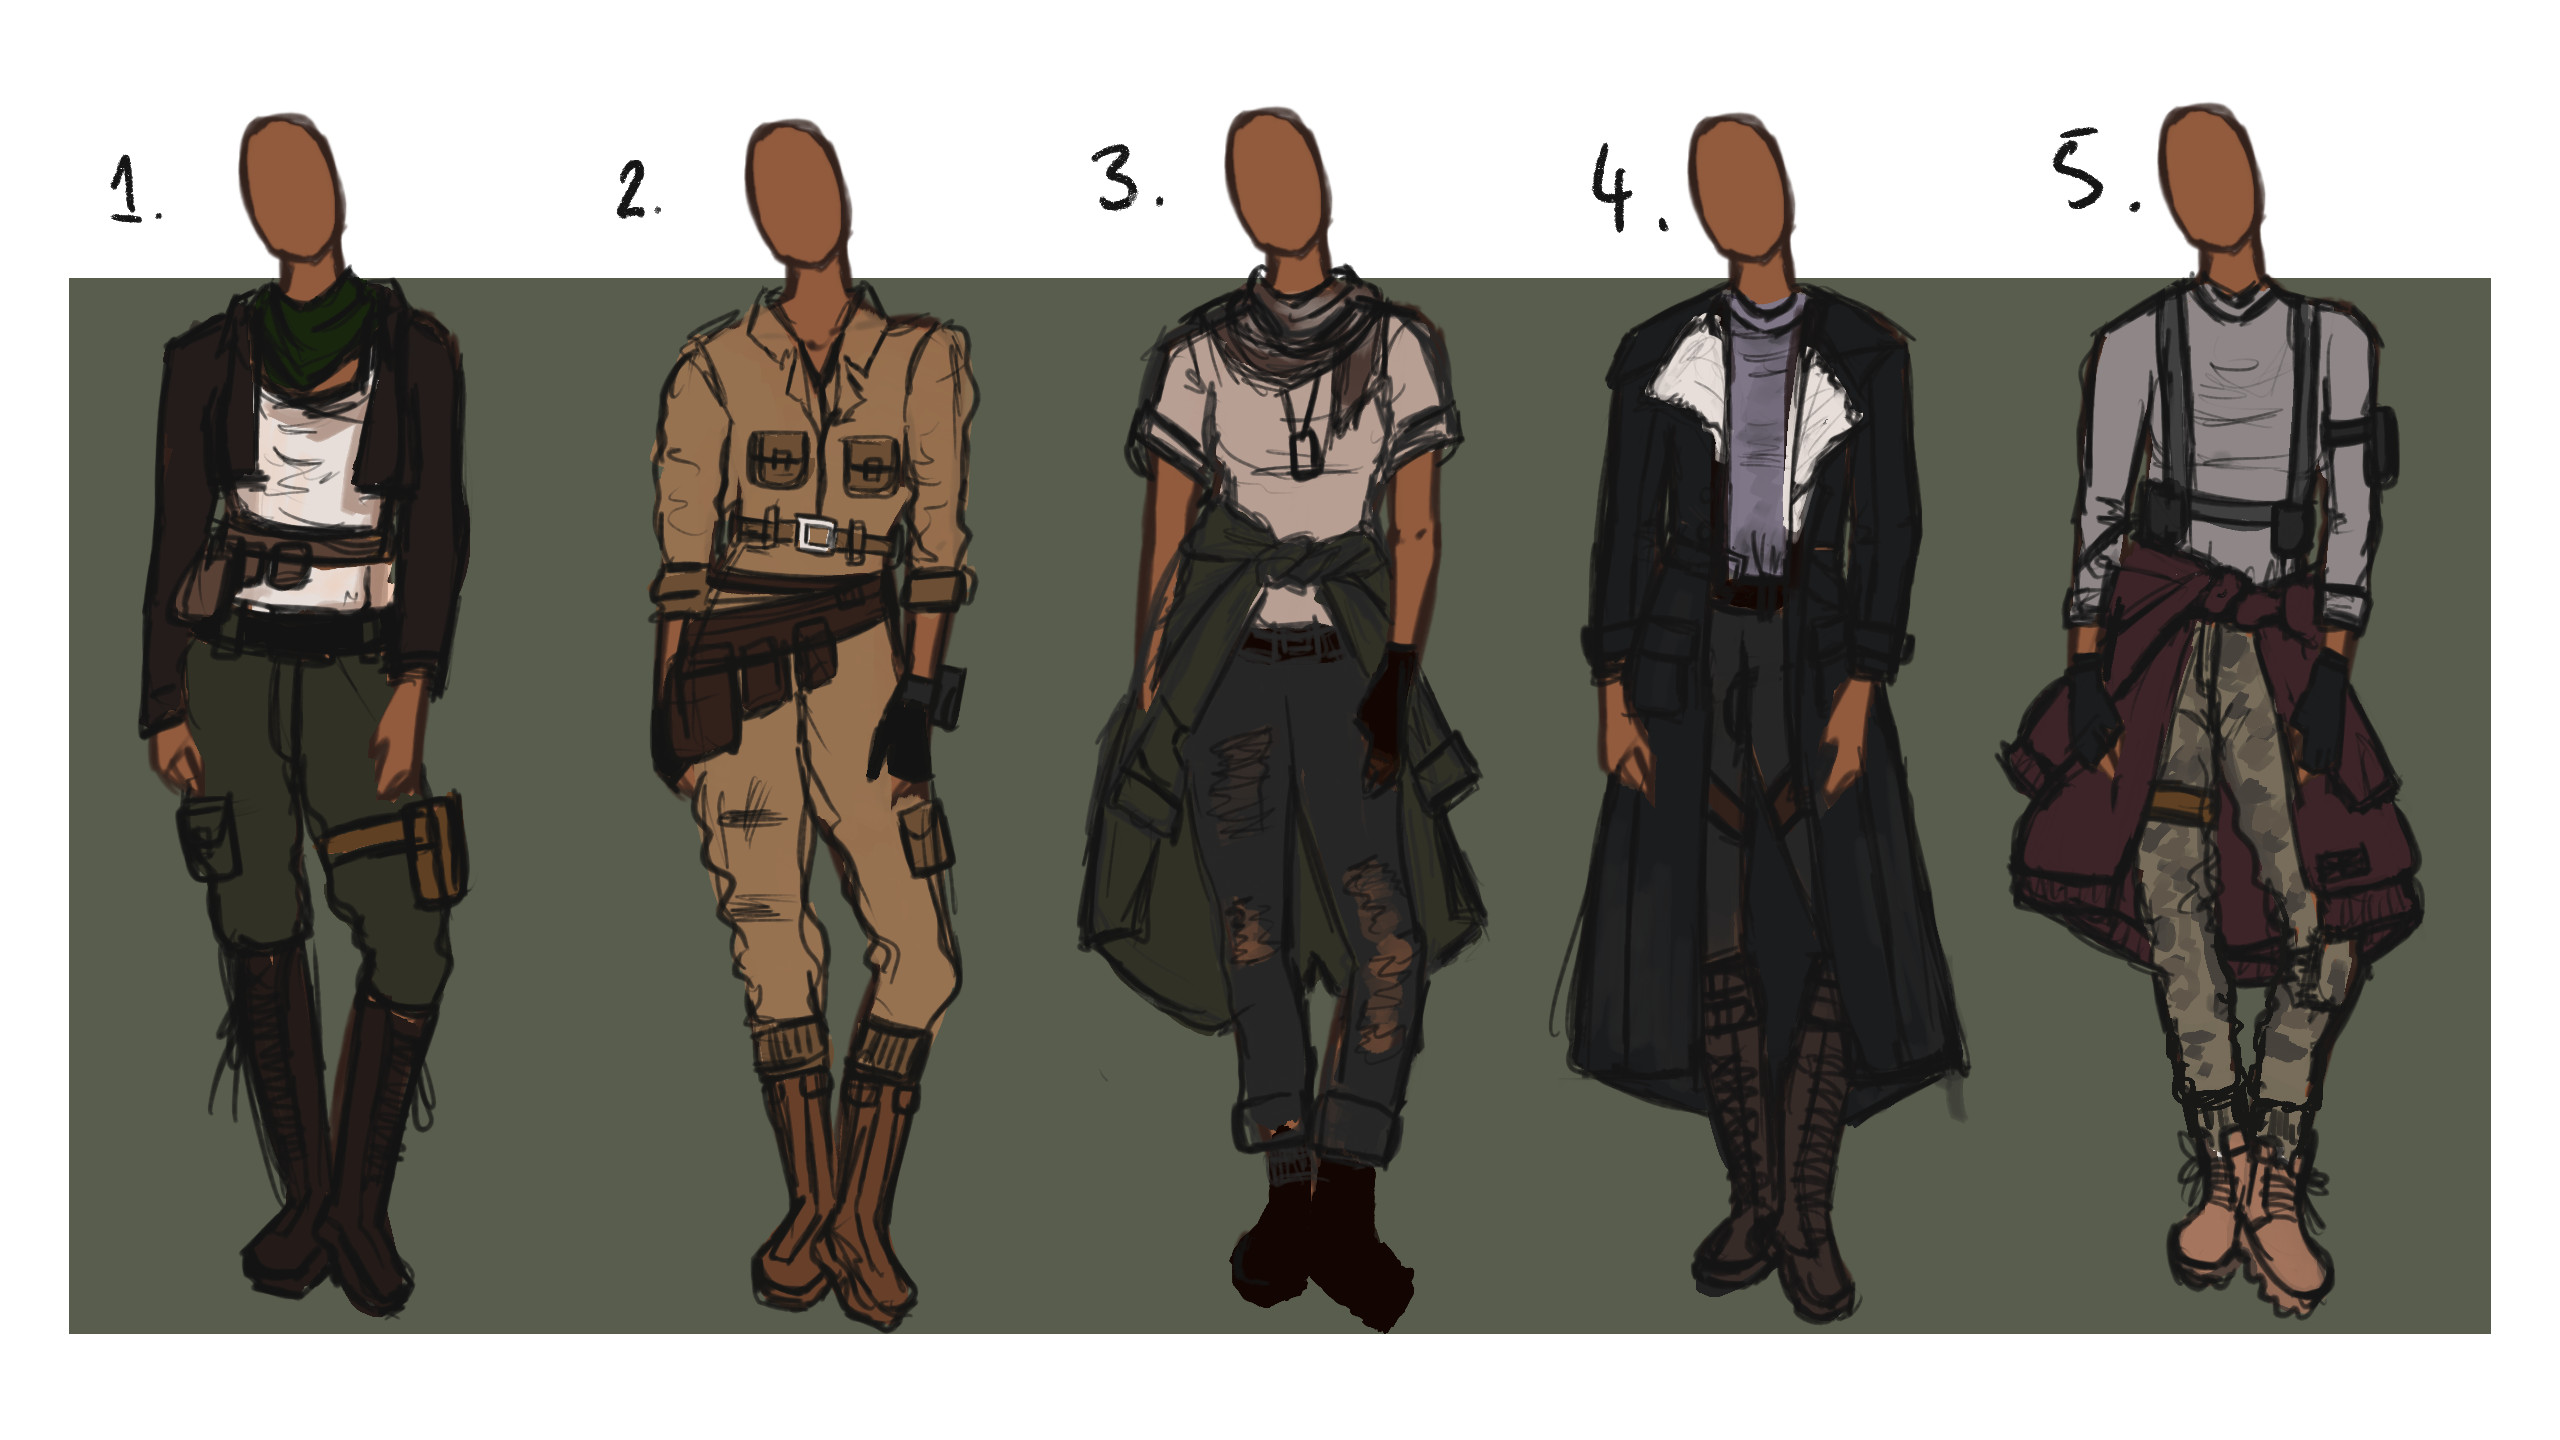 outfit concepts 2